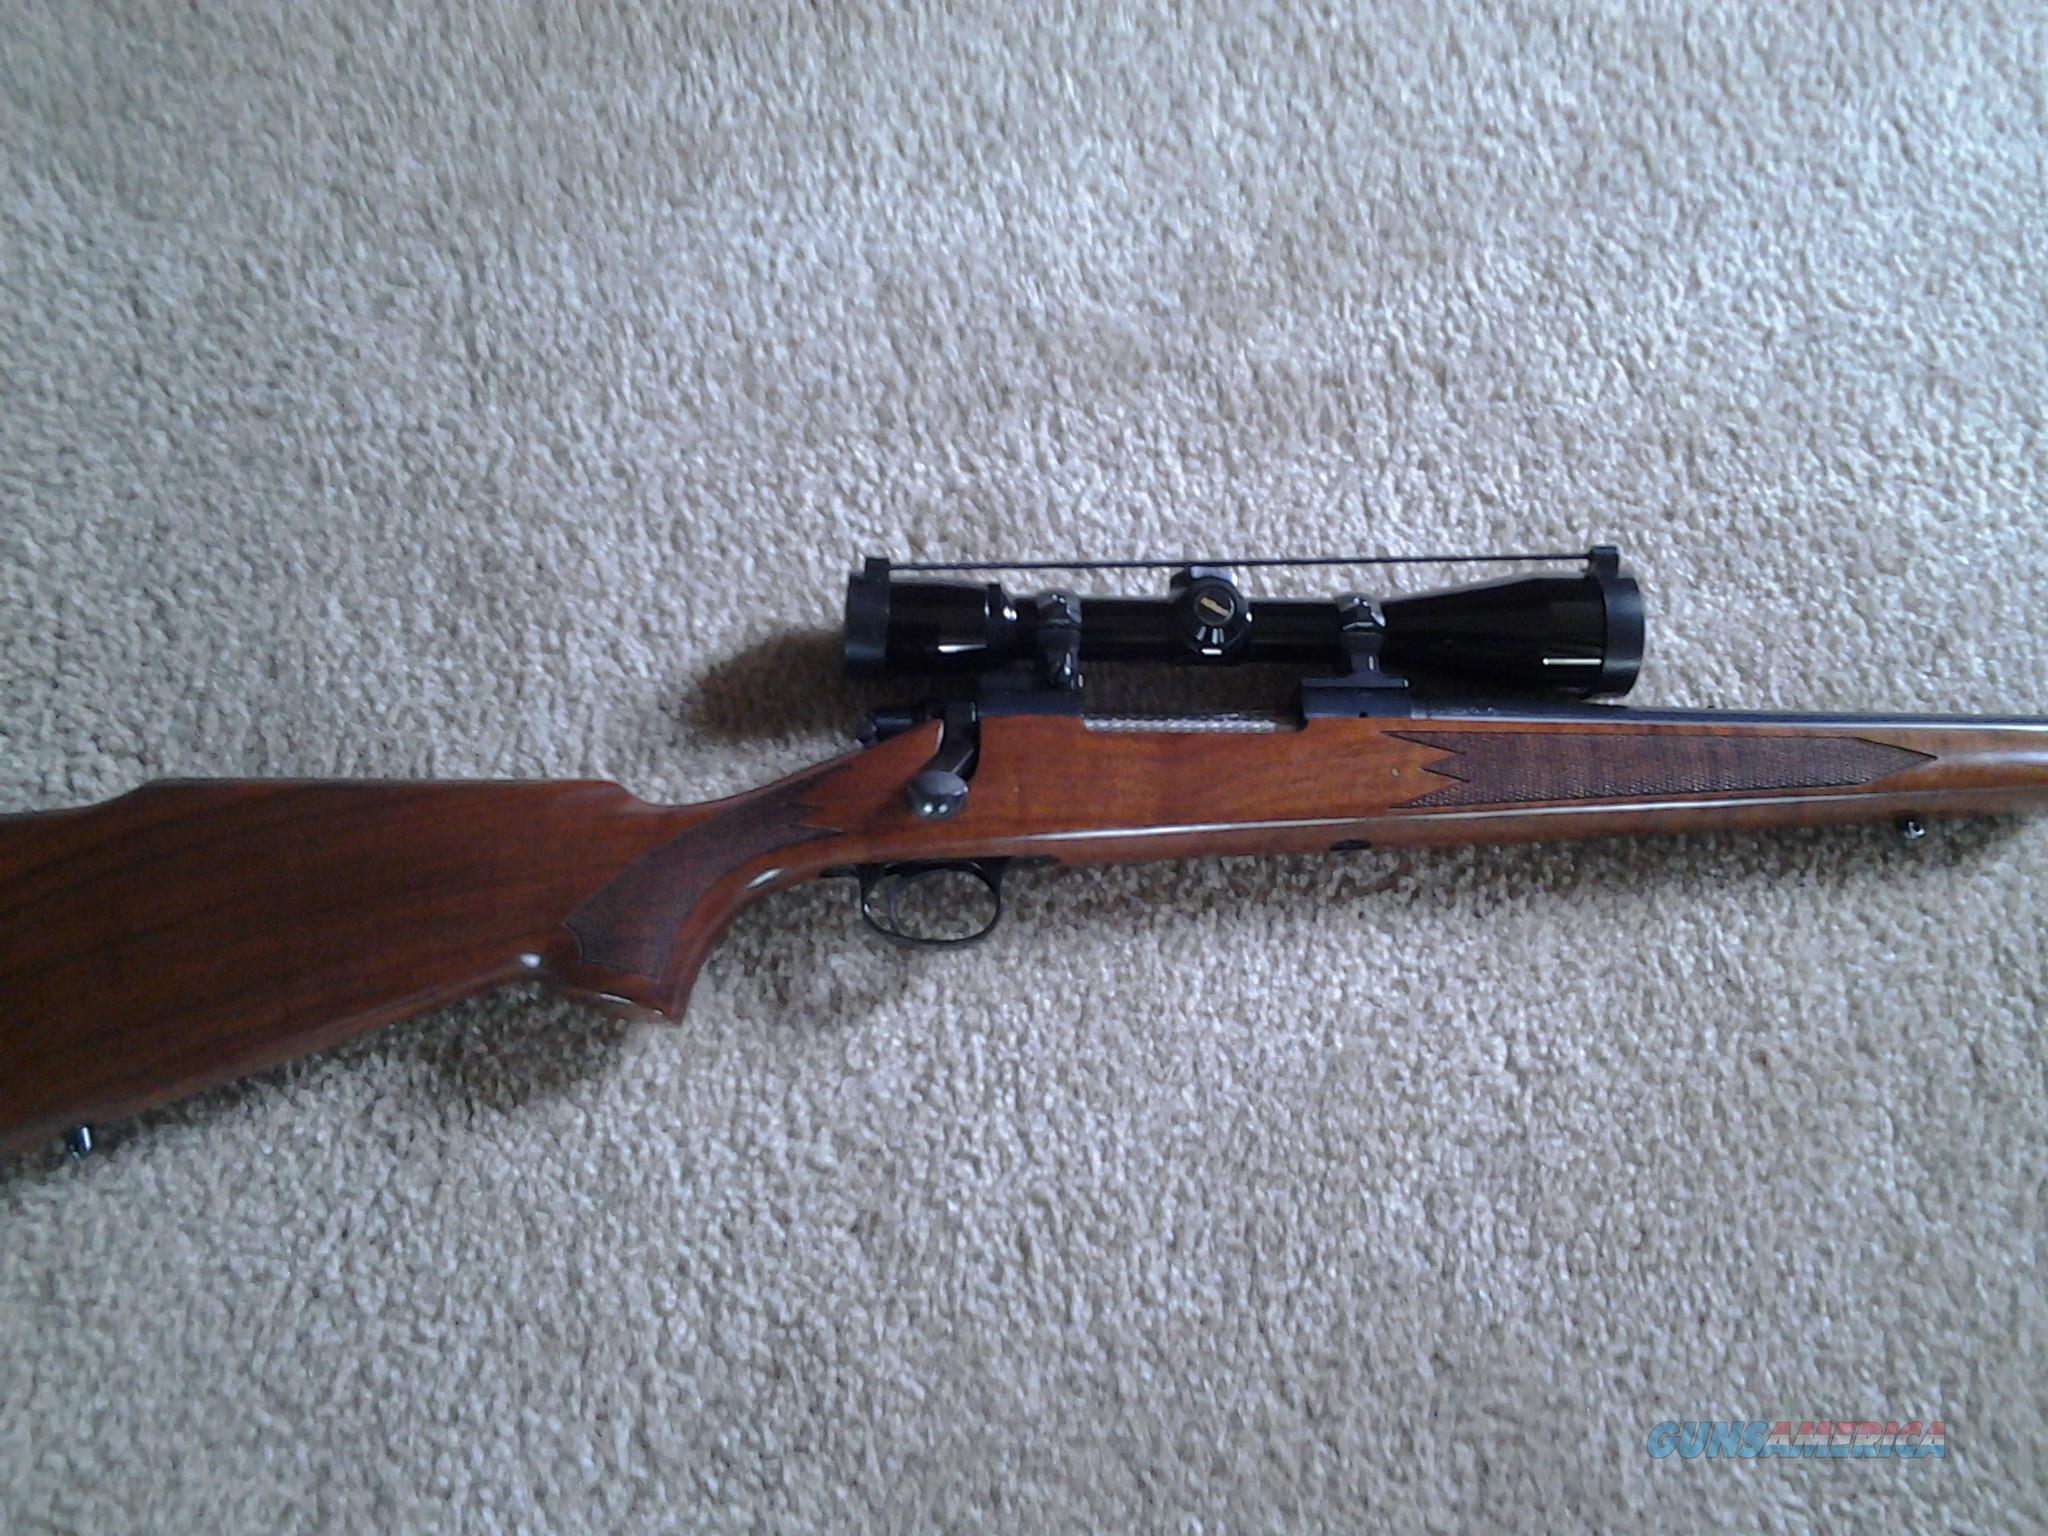 Like New Remington Modle 700 ADL Chambered for 7MM Rem Mag  Guns > Rifles > Remington Rifles - Modern > Model 700 > Sporting